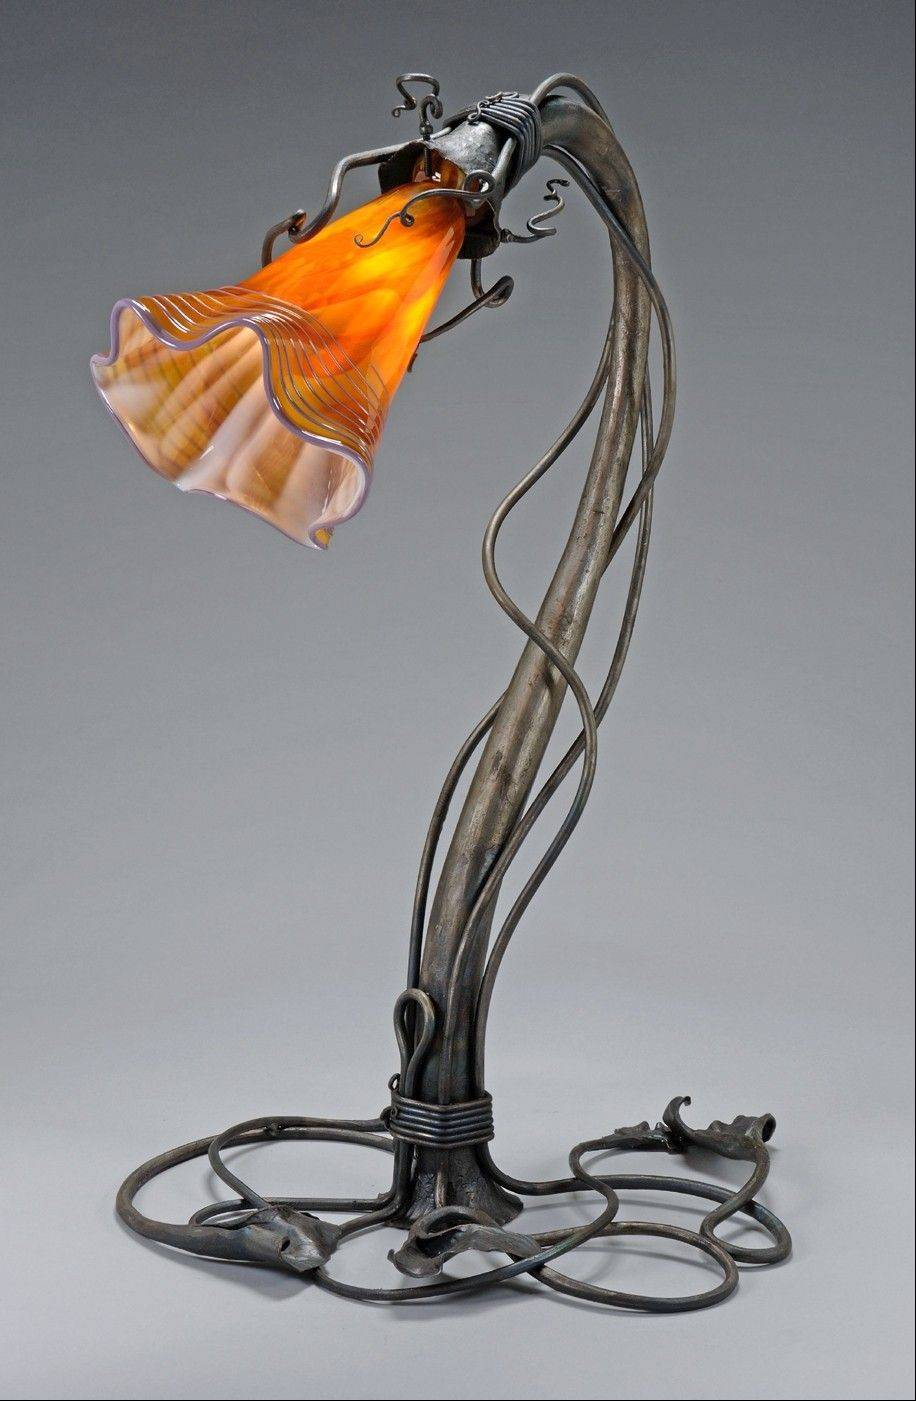 La Waltz, a forged iron sculpture and functional art lamp, is an example of the type of work Roberta Elliott will be showing at the Geneva Arts Fair.